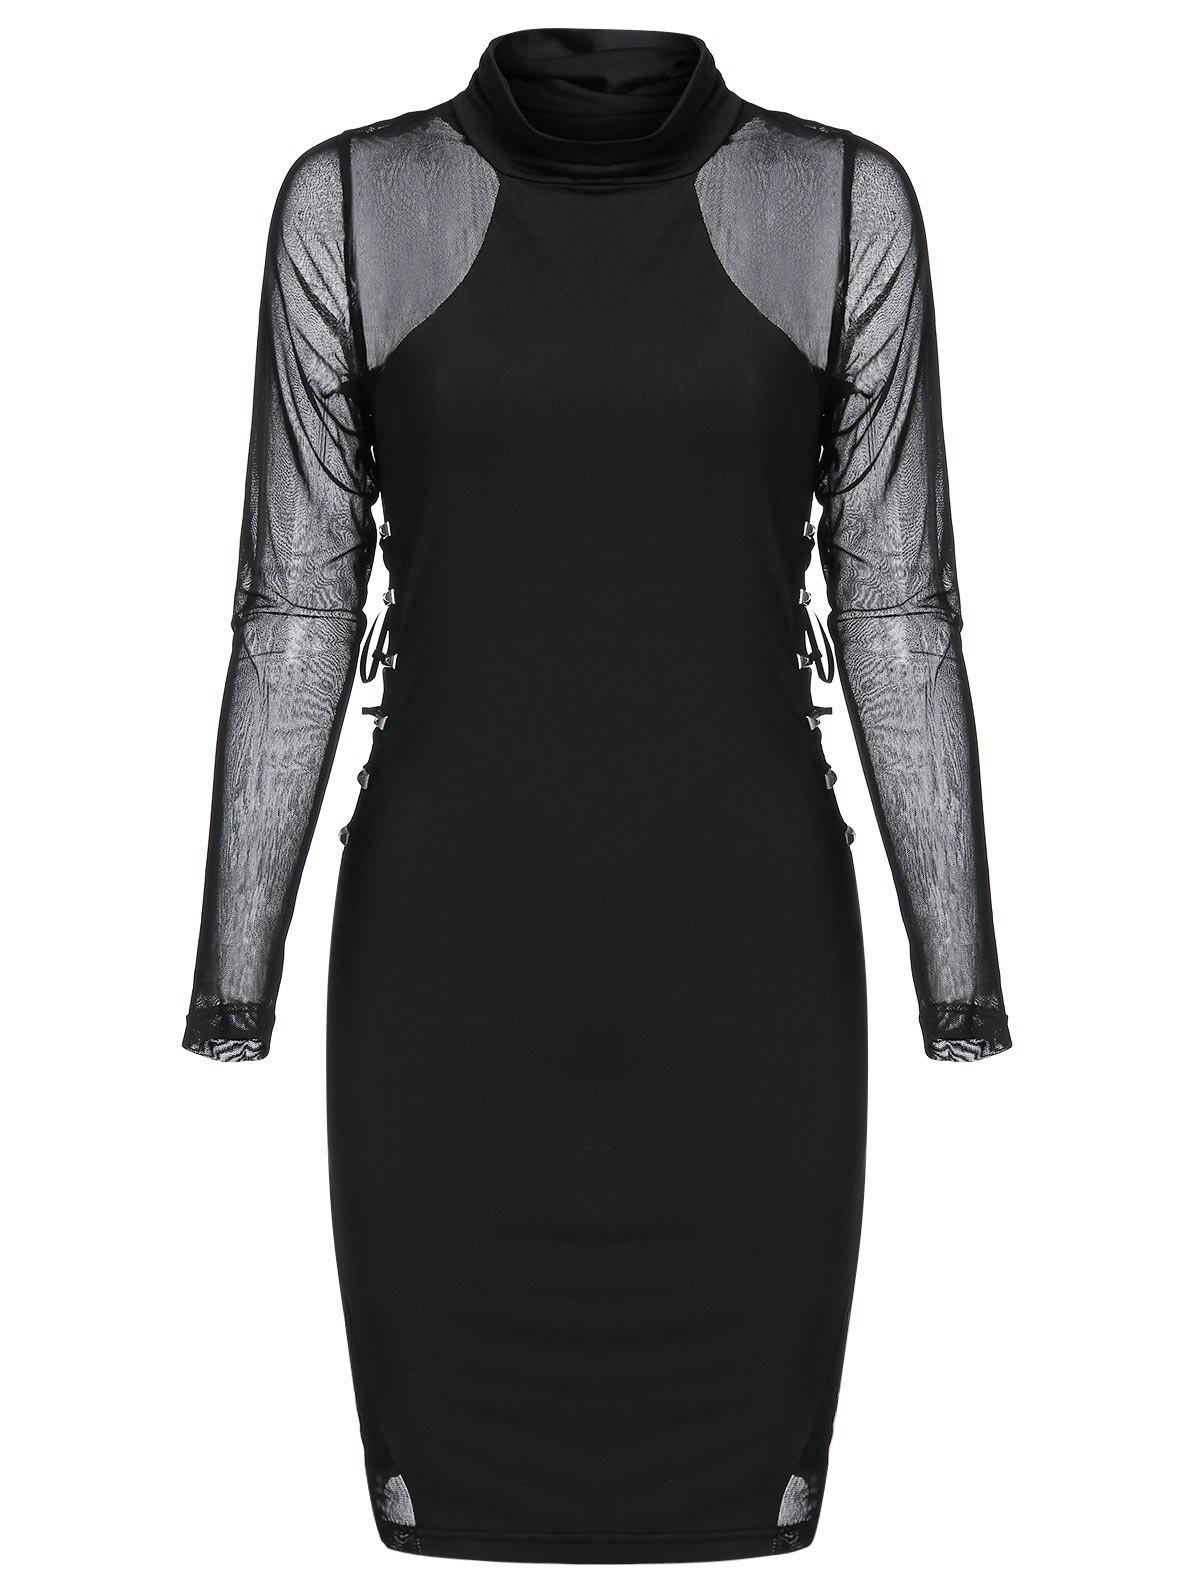 Best Rivet Embellished Lace-up Mesh Insert Mini Gothic Bodycon Dress